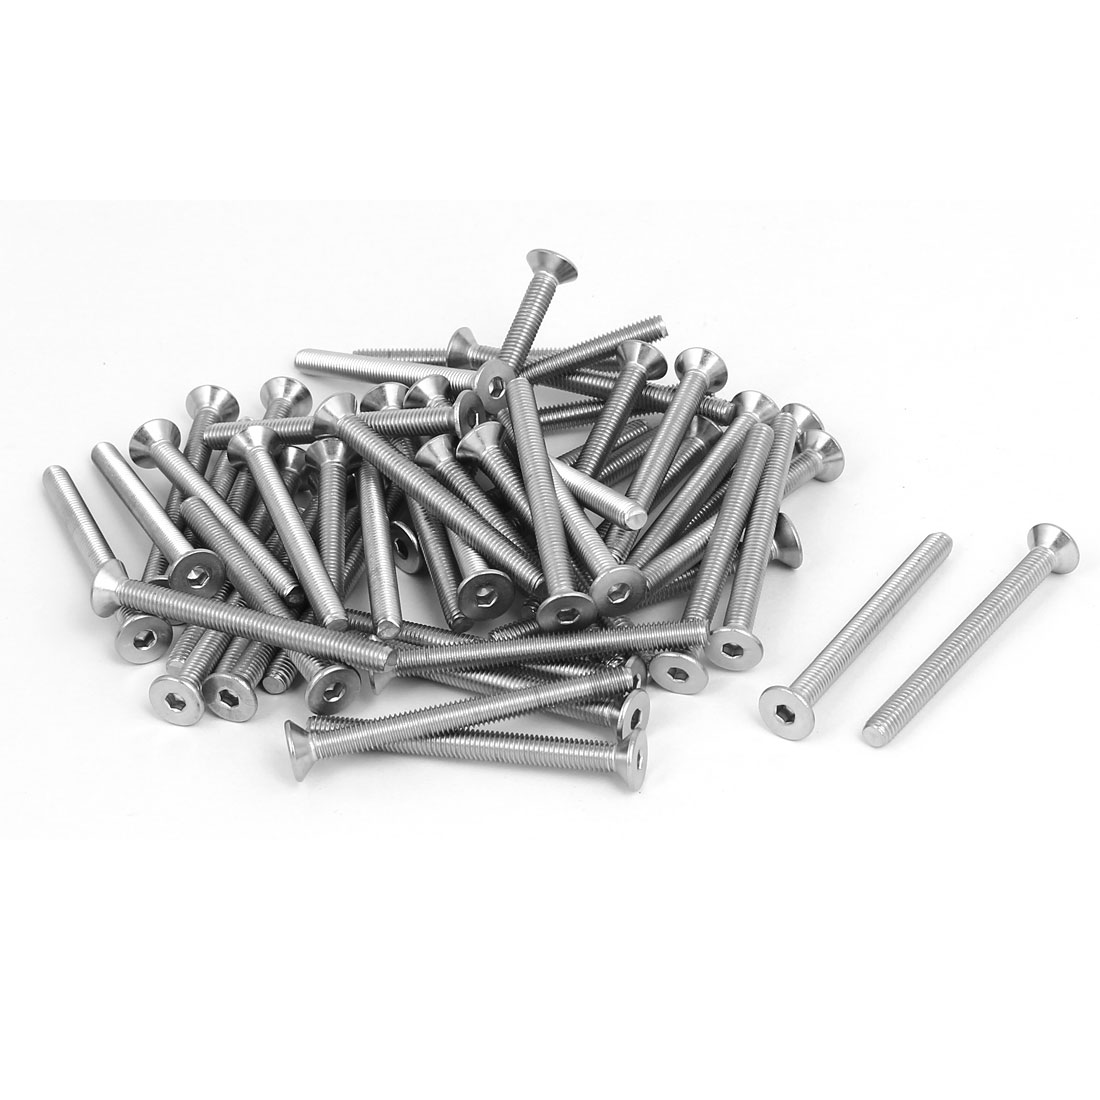 M5x55mm 304 Stainless Steel Flat Head Hex Socket Screws Fastener DIN7991 50pcs